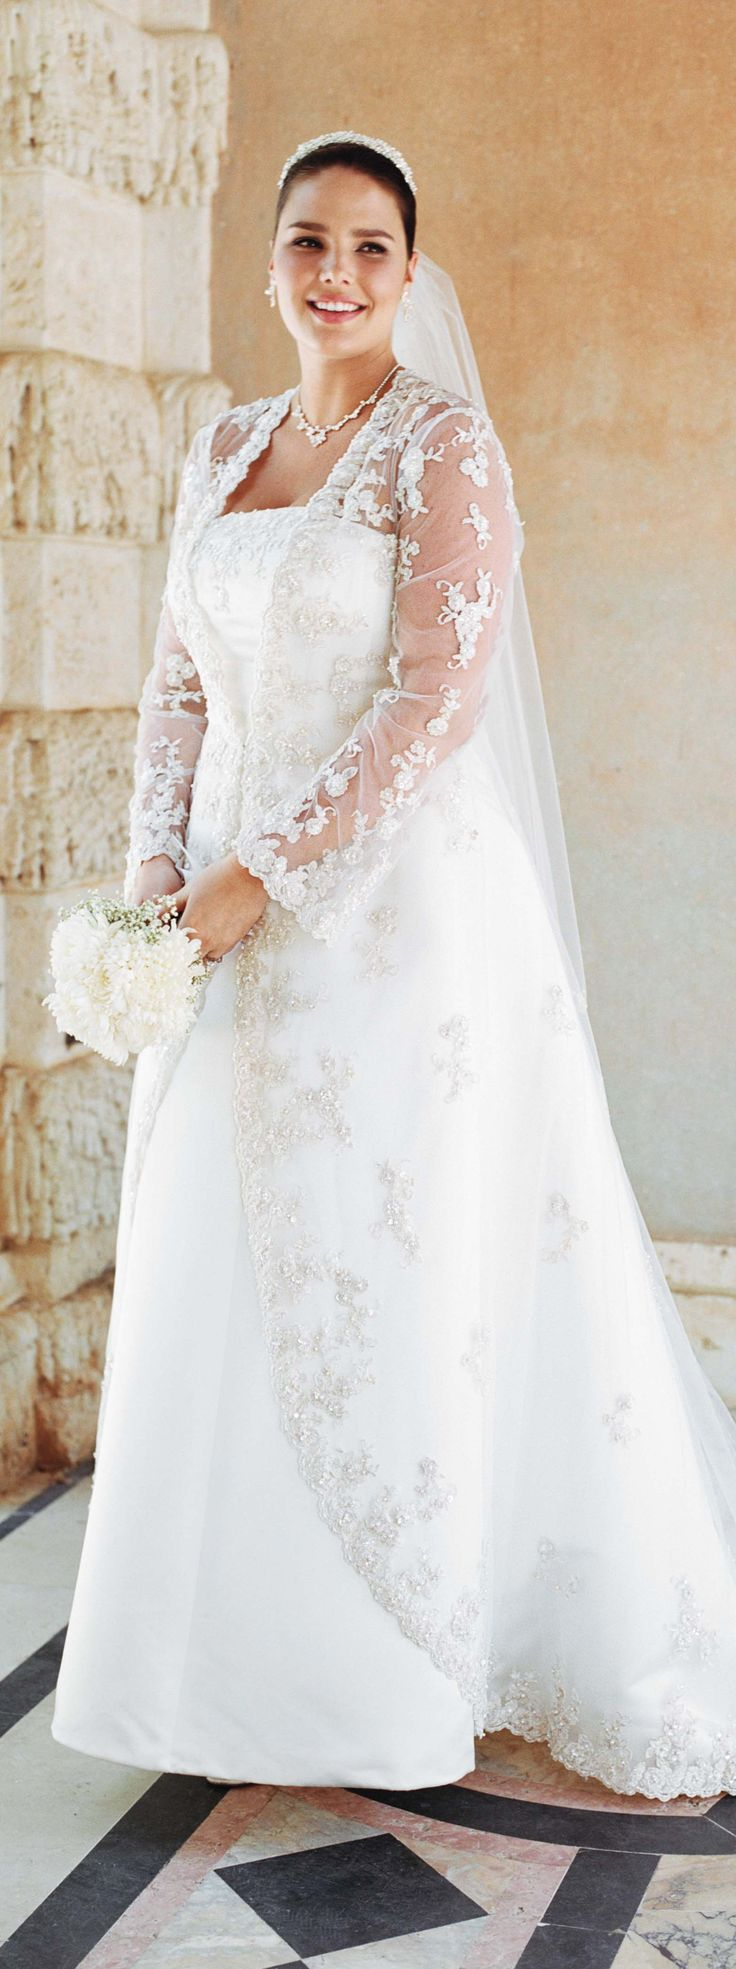 Wedding Dress With Sleeves From David 39 S Bridal Article